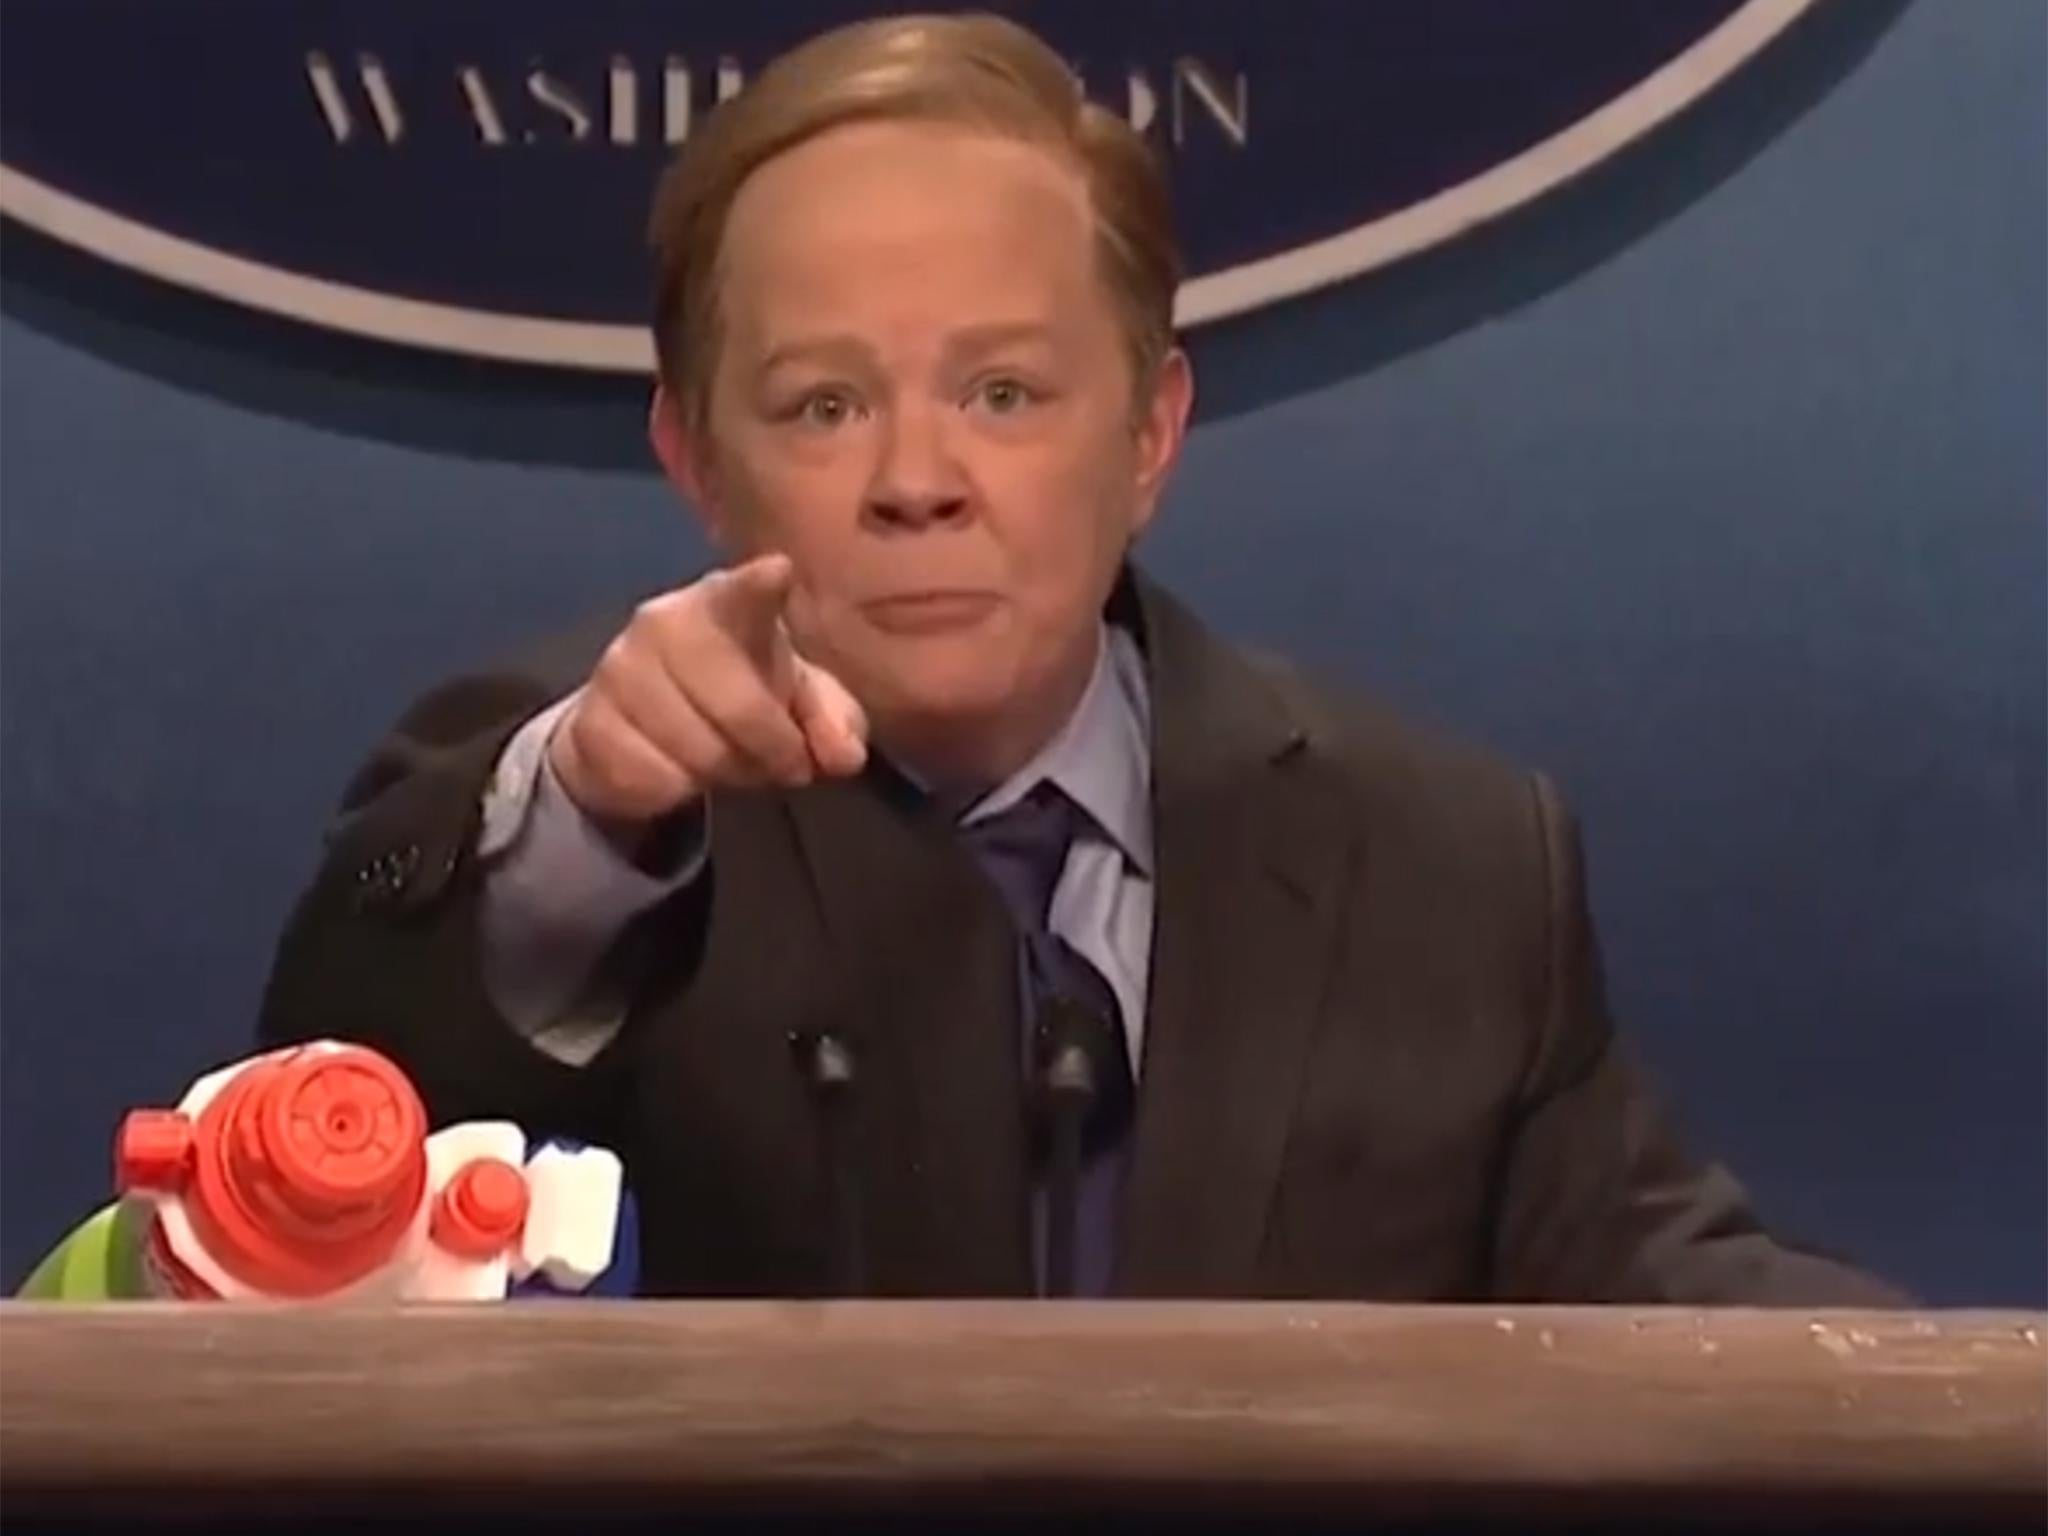 Saturday Night Live honours Sean Spicer in hilarious Melissa McCarthy